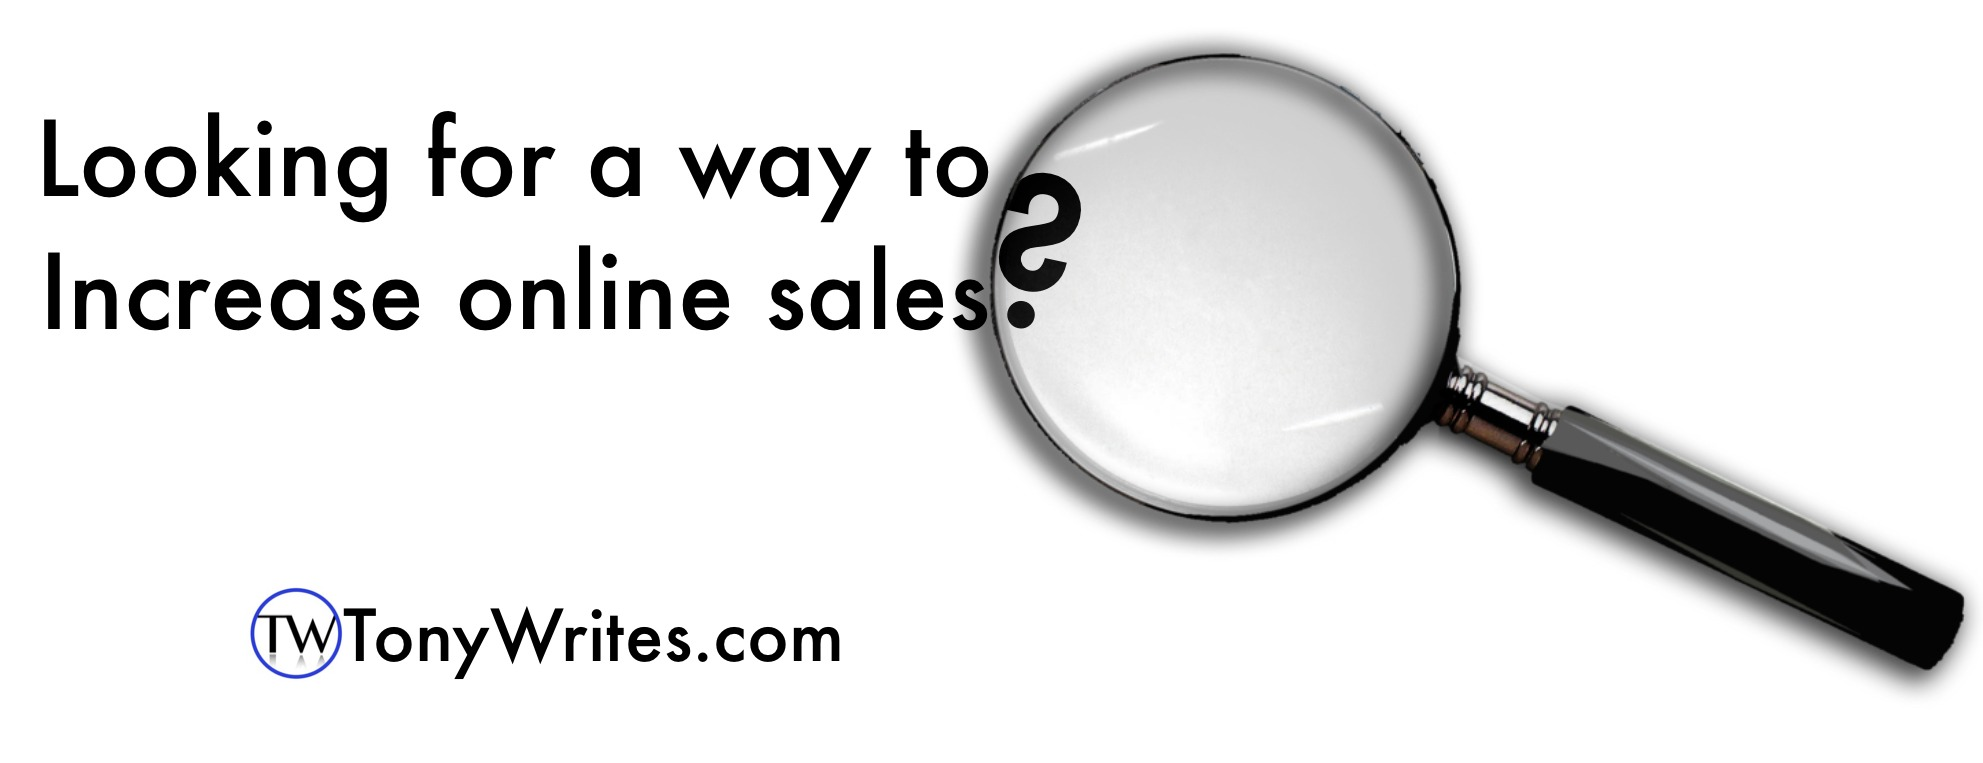 Increase online sales Using this often overlooked tip